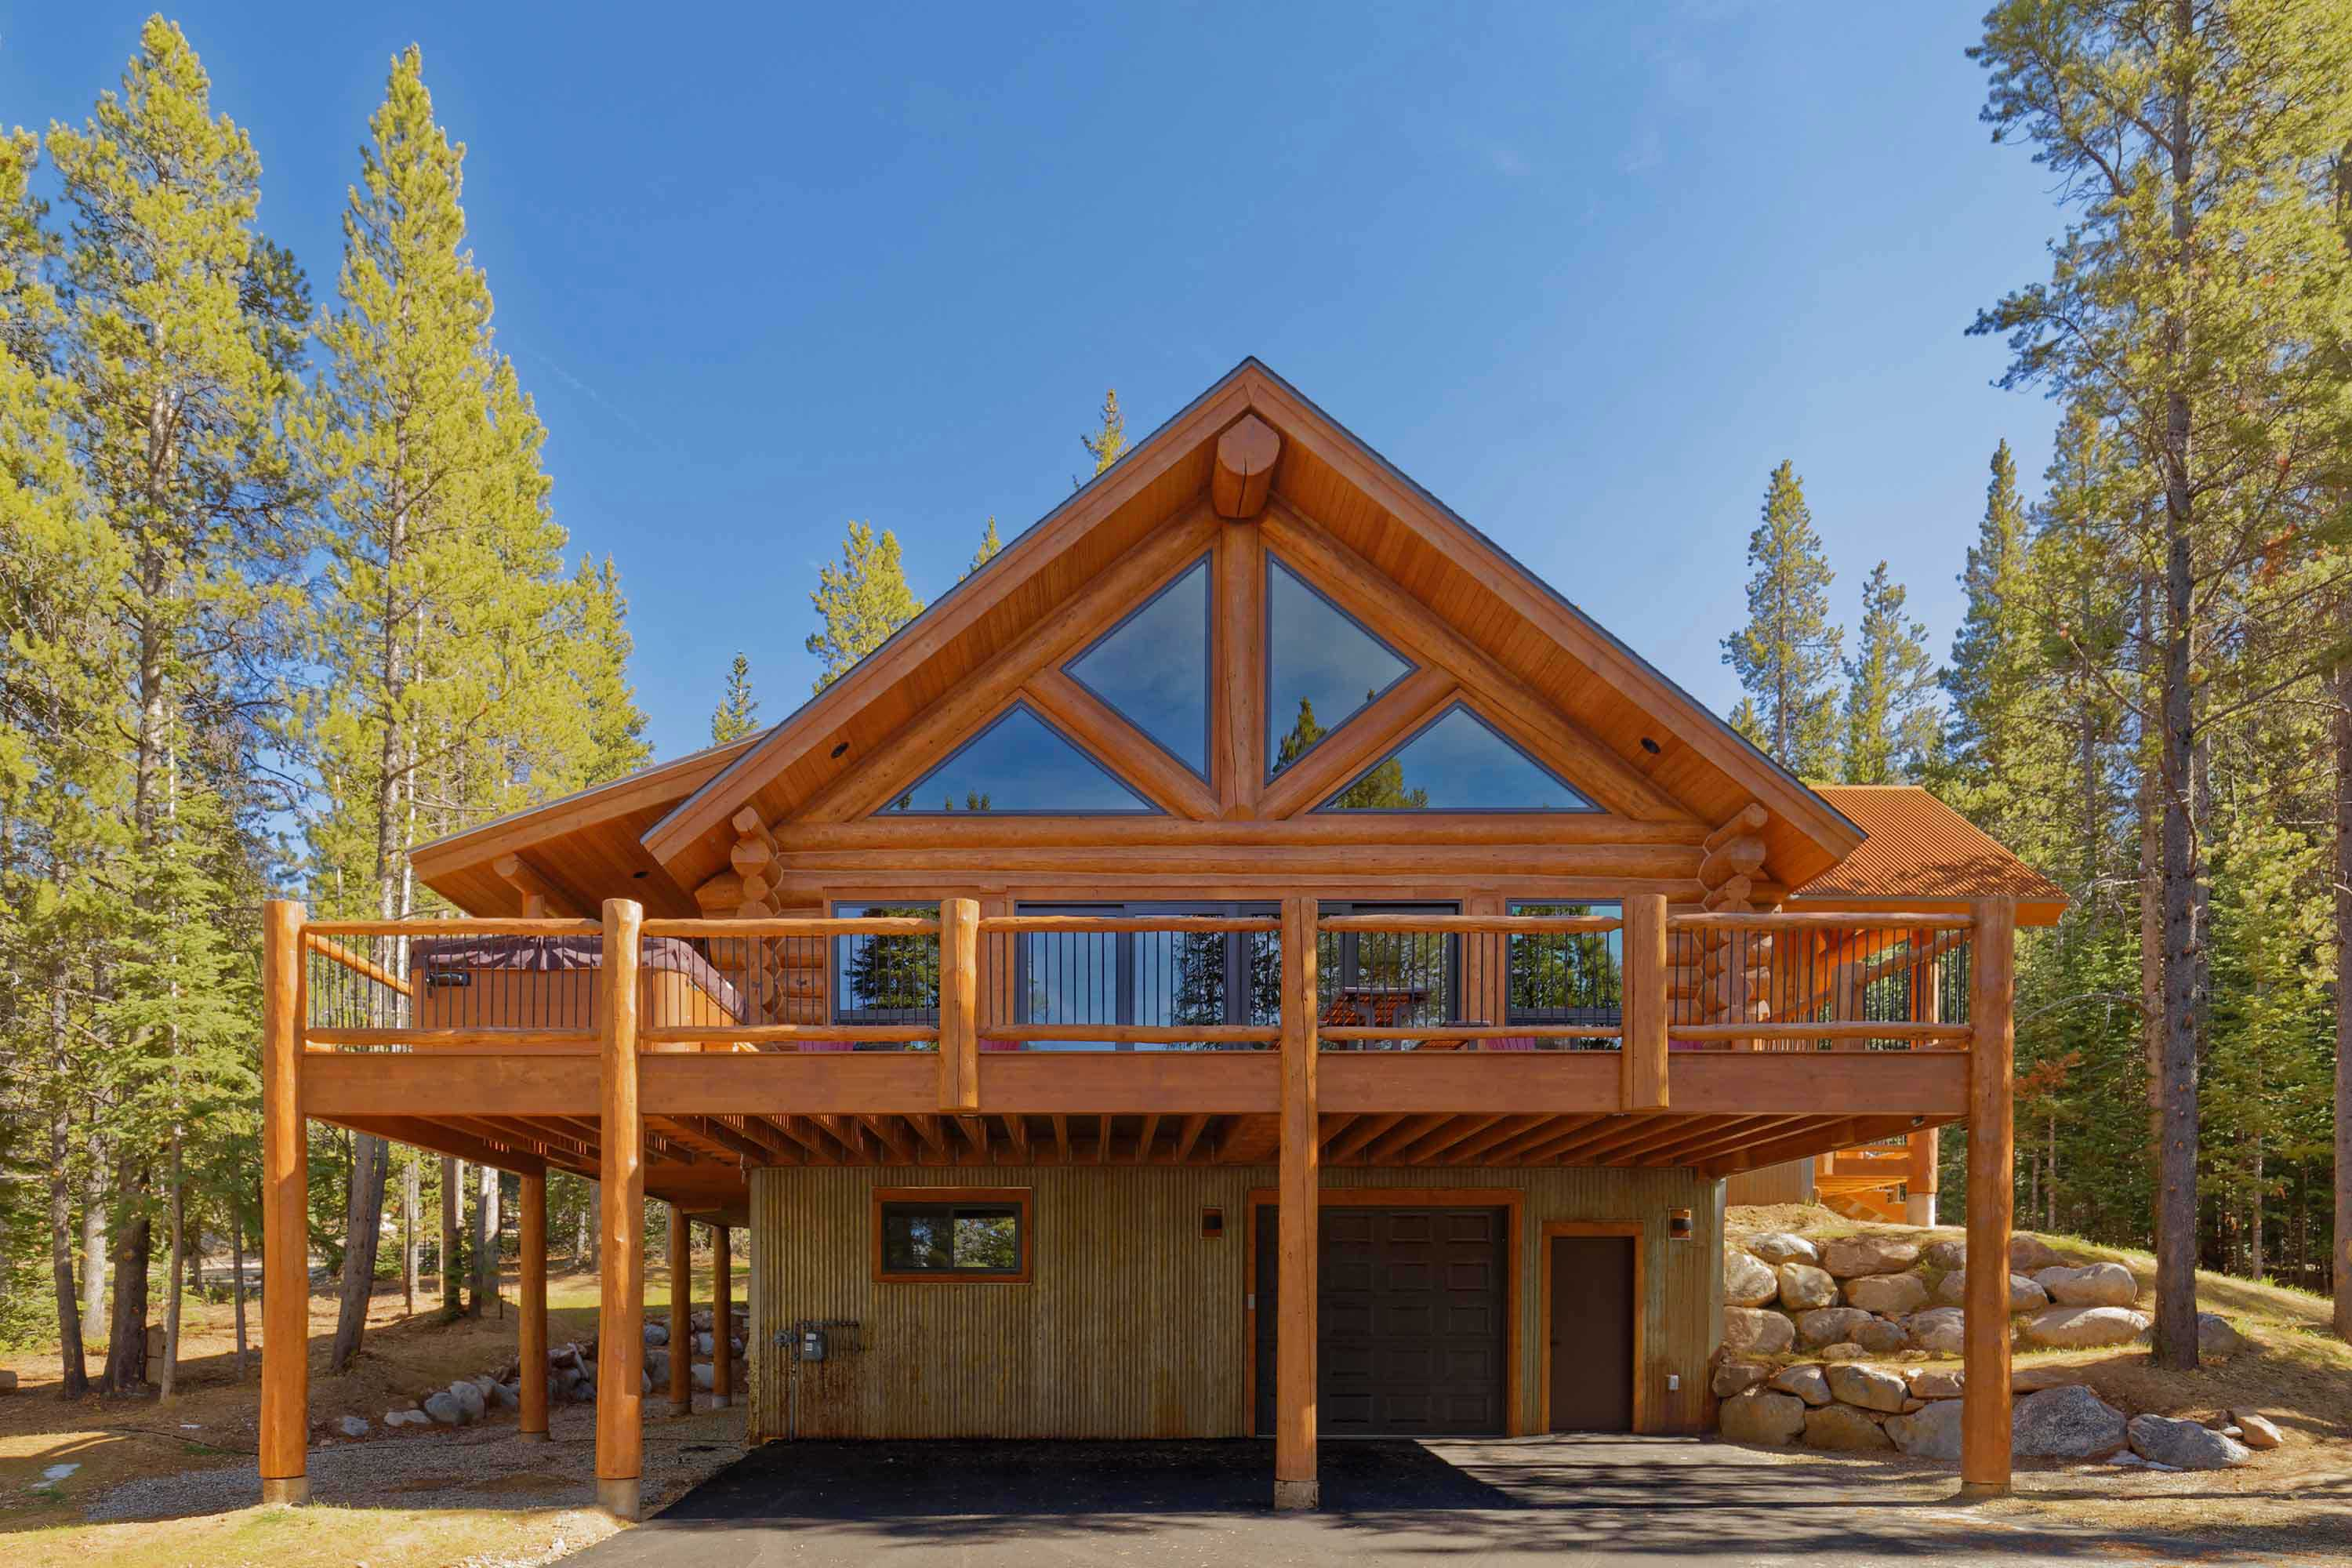 This home is minutes from Breckenridge ski resort.